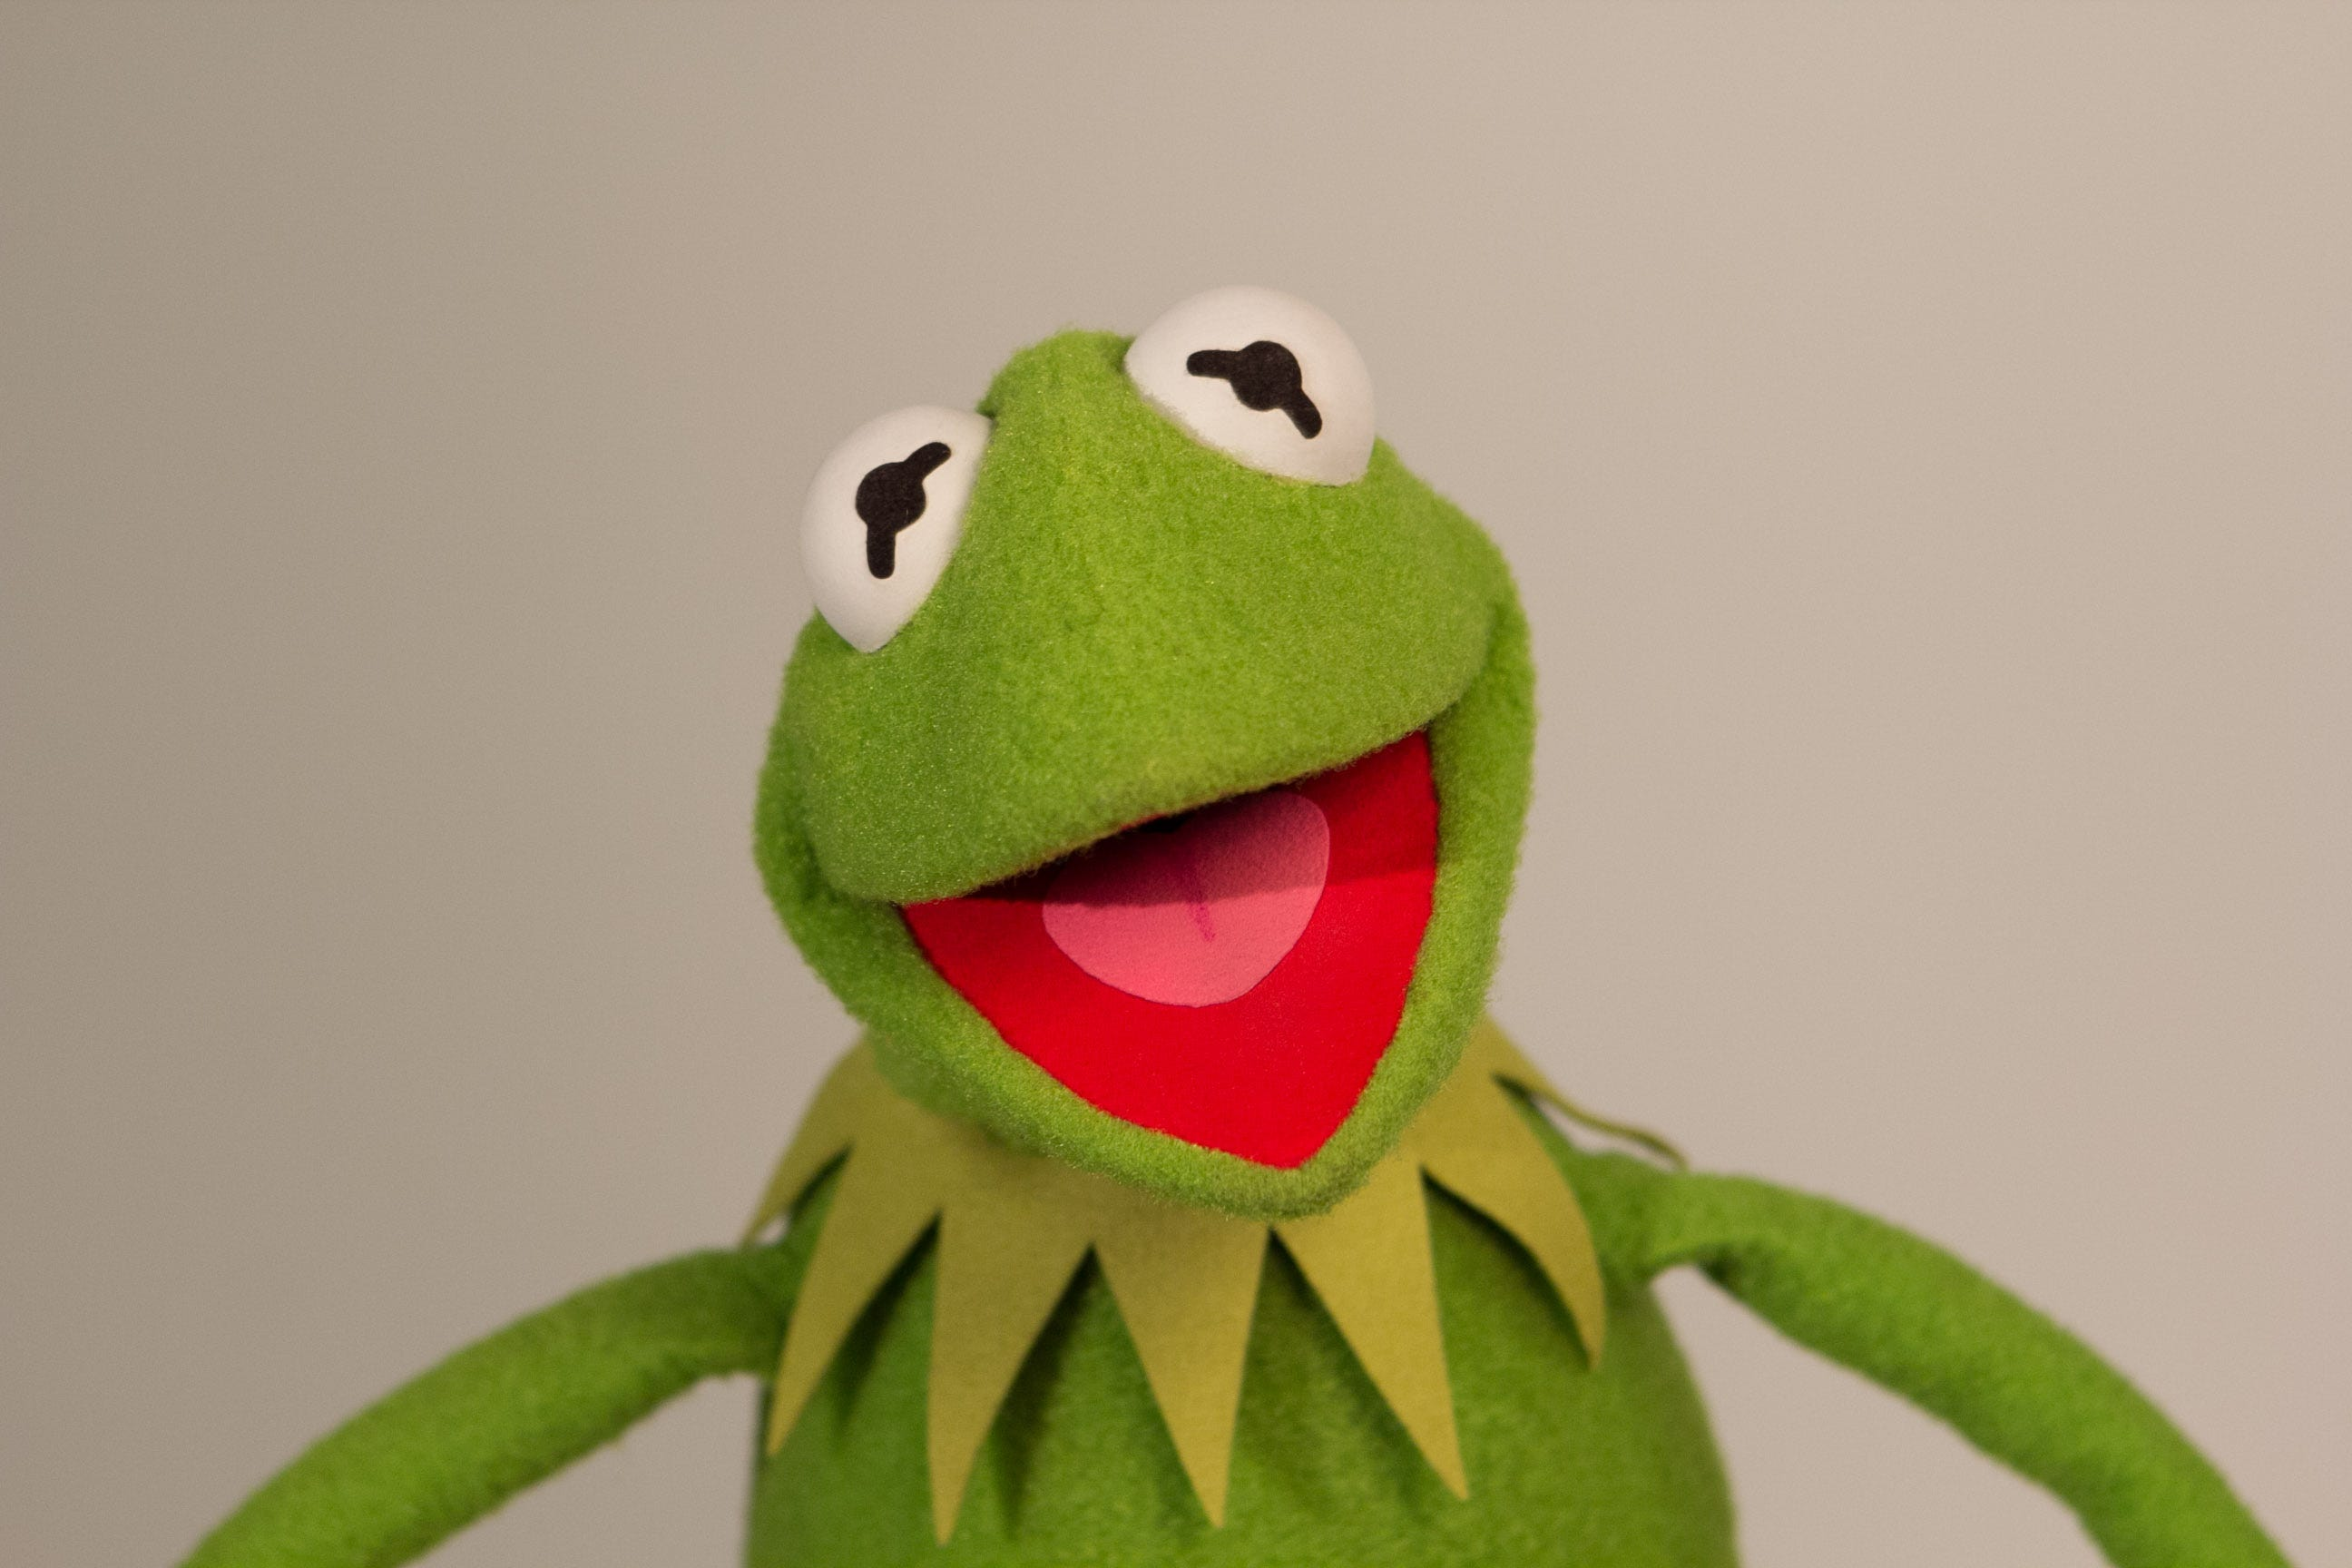 Kermit The Frog: 'I try to lead a clean life' - BBC